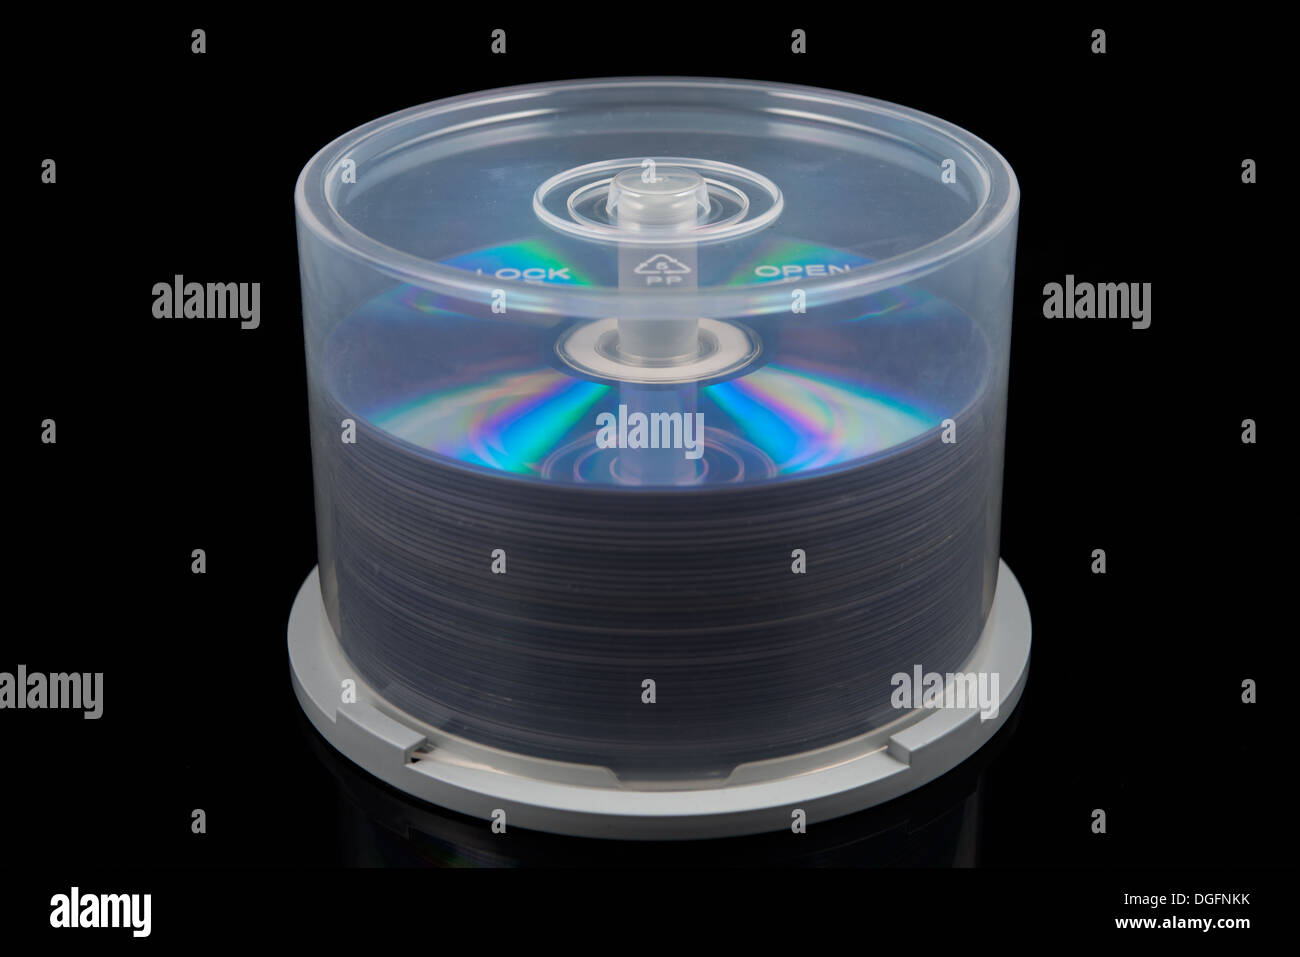 stack of dvd's, cd's on a spindle Stock Photo